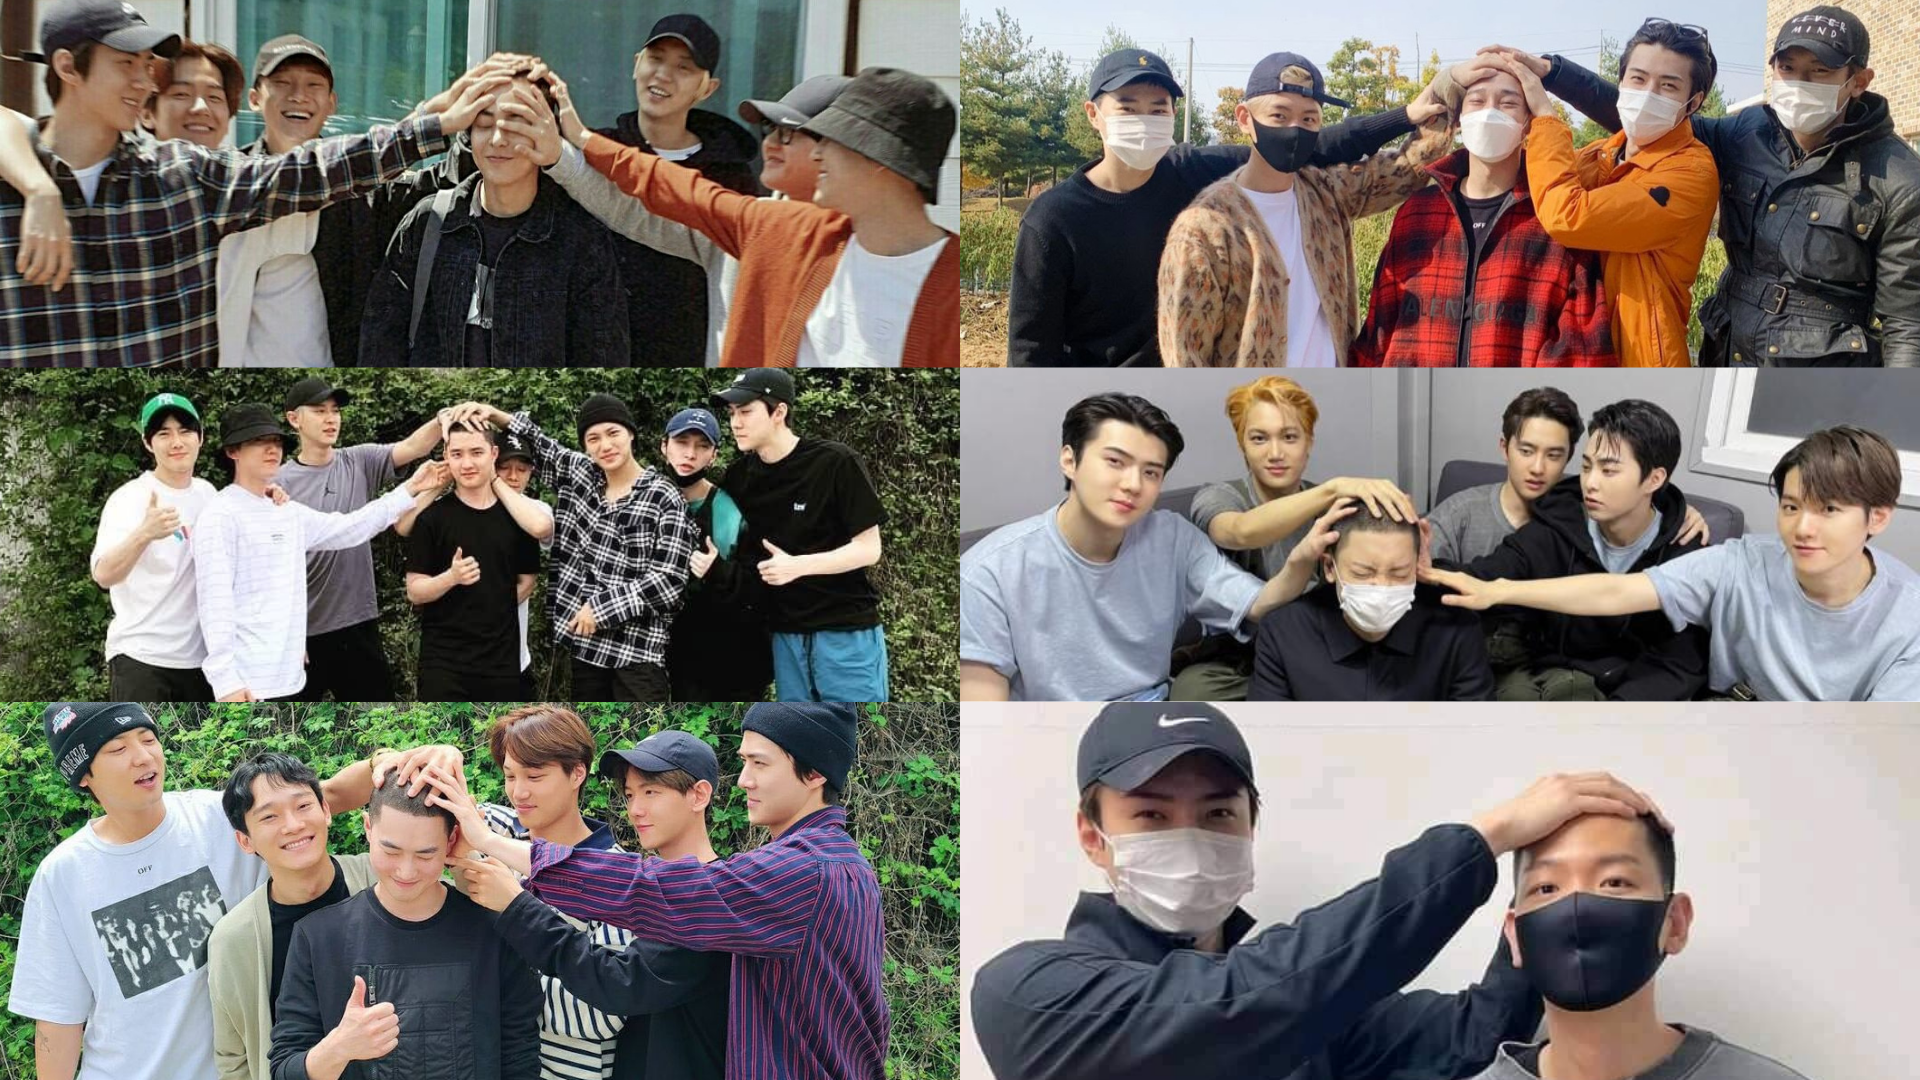 Baekhyun Continued EXO's Tradition with Sehun Only